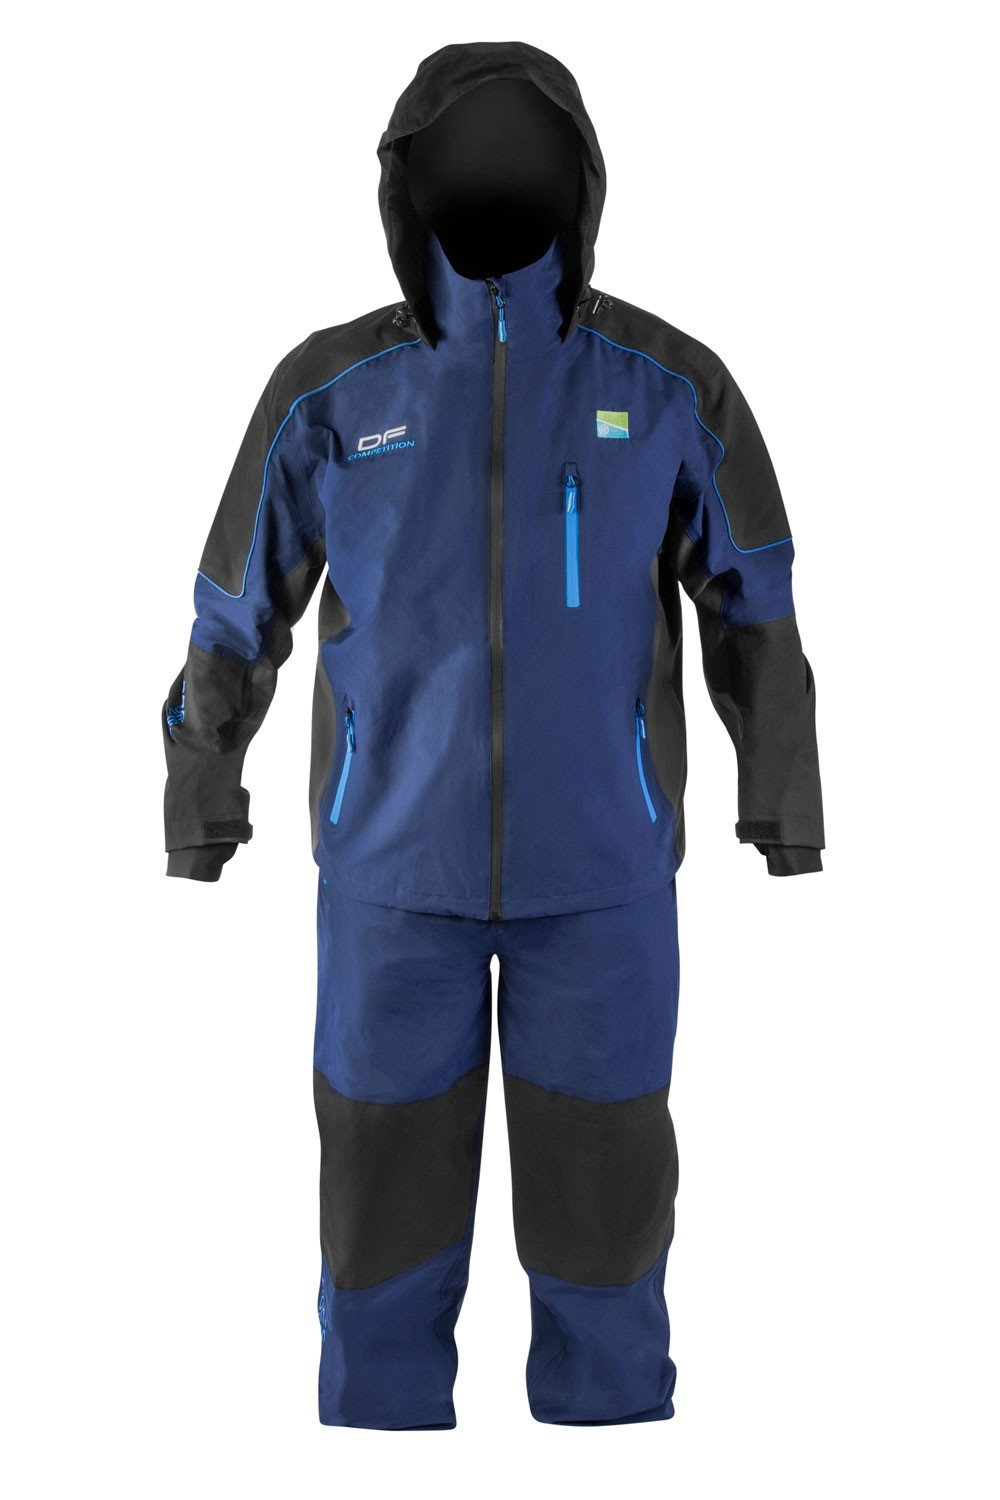 Preston Innovations DF Competition suit 2 piece